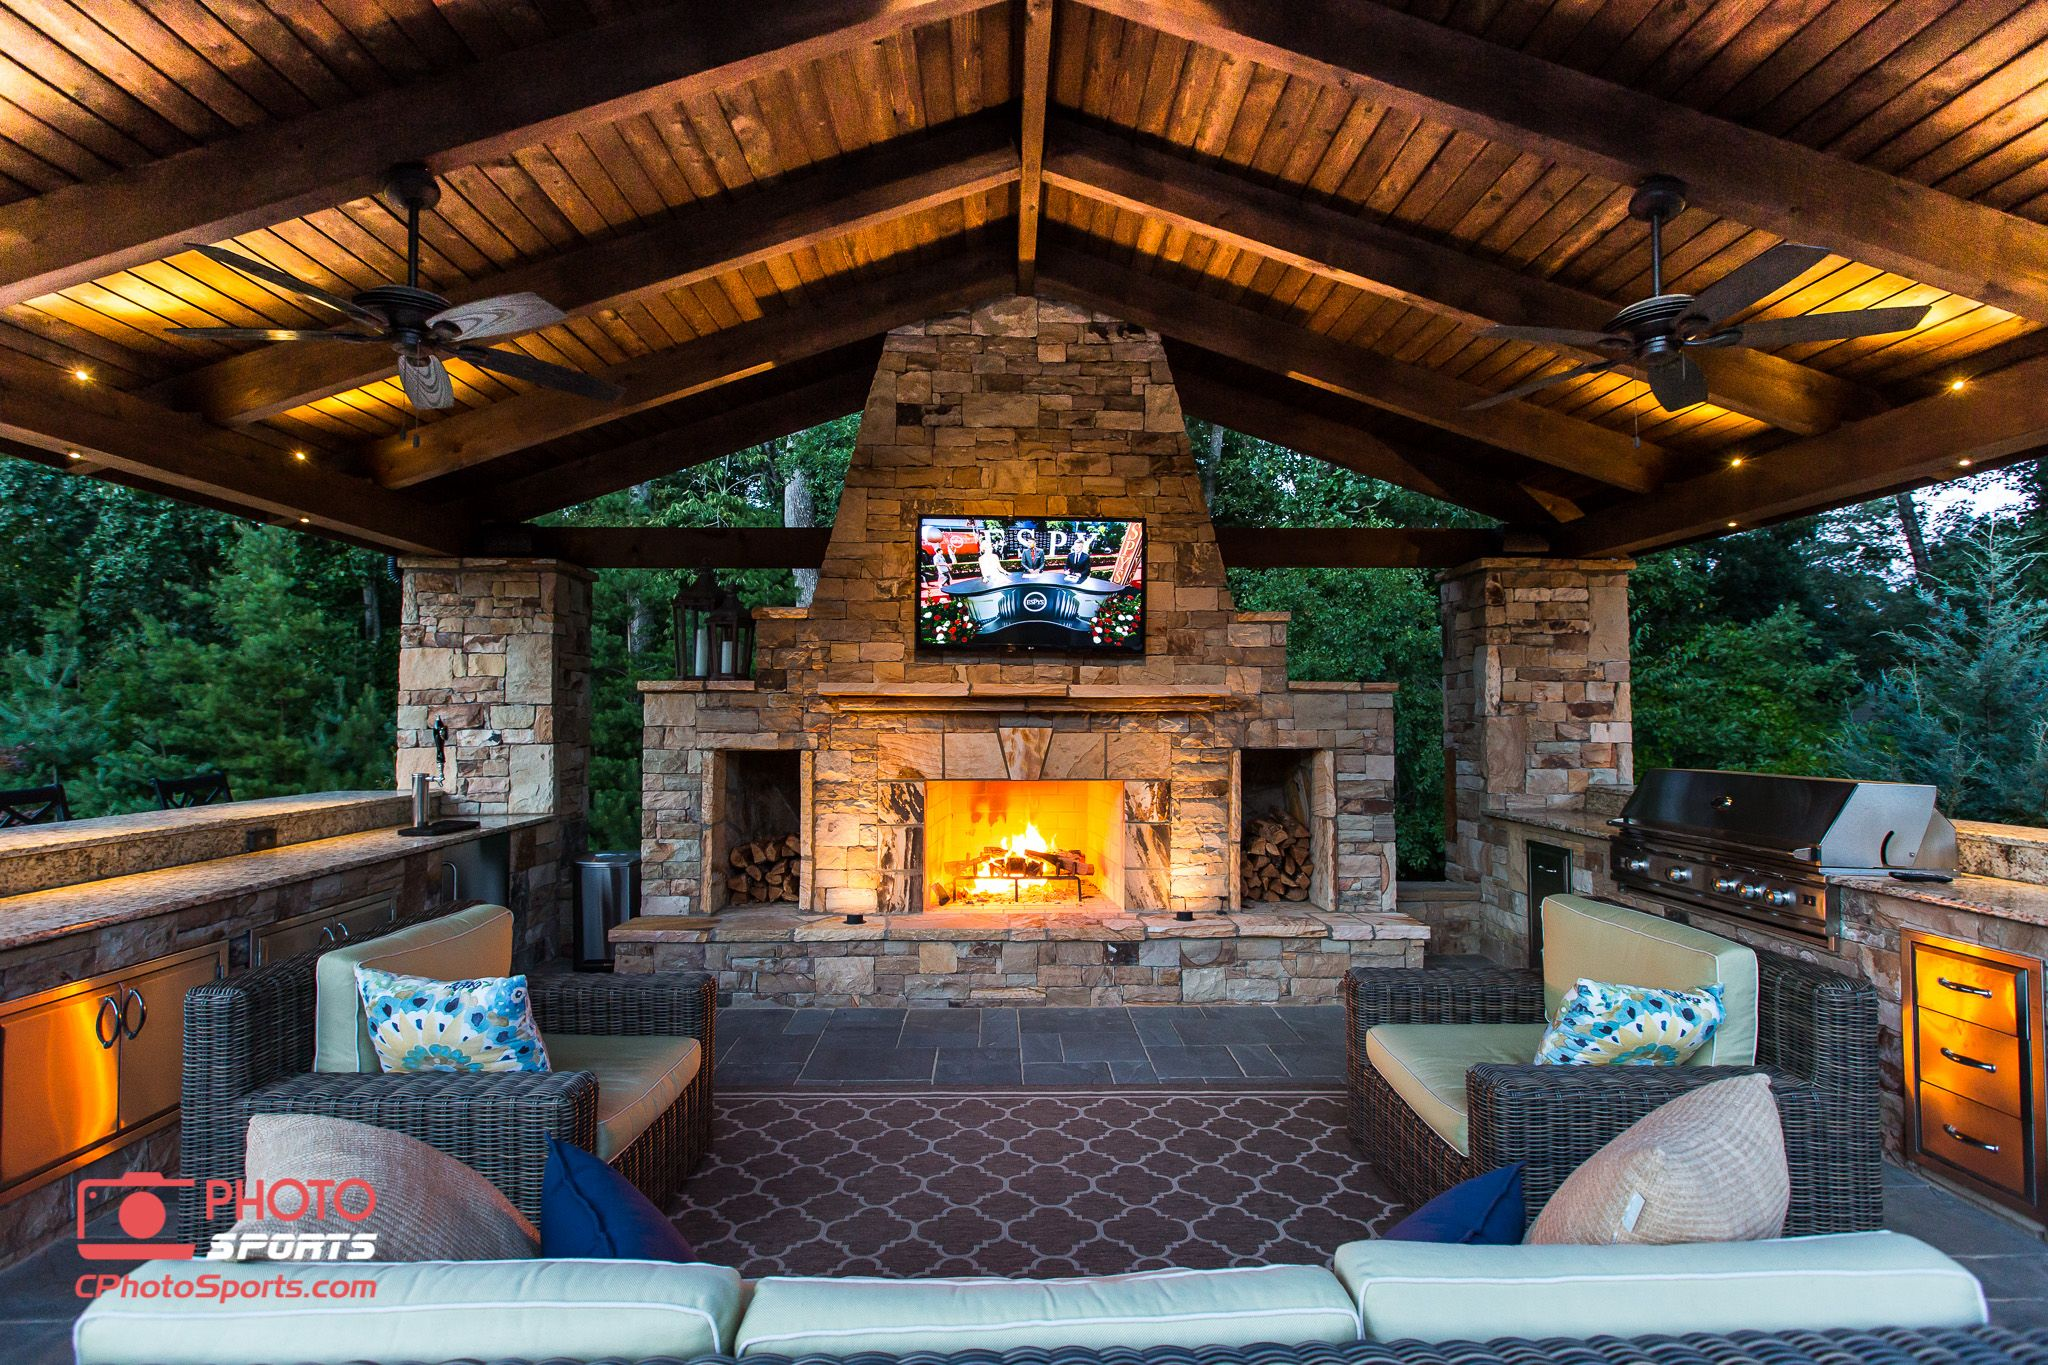 Outdoor Kitchen With Fireplace Countertops Cost A Pavilion An And